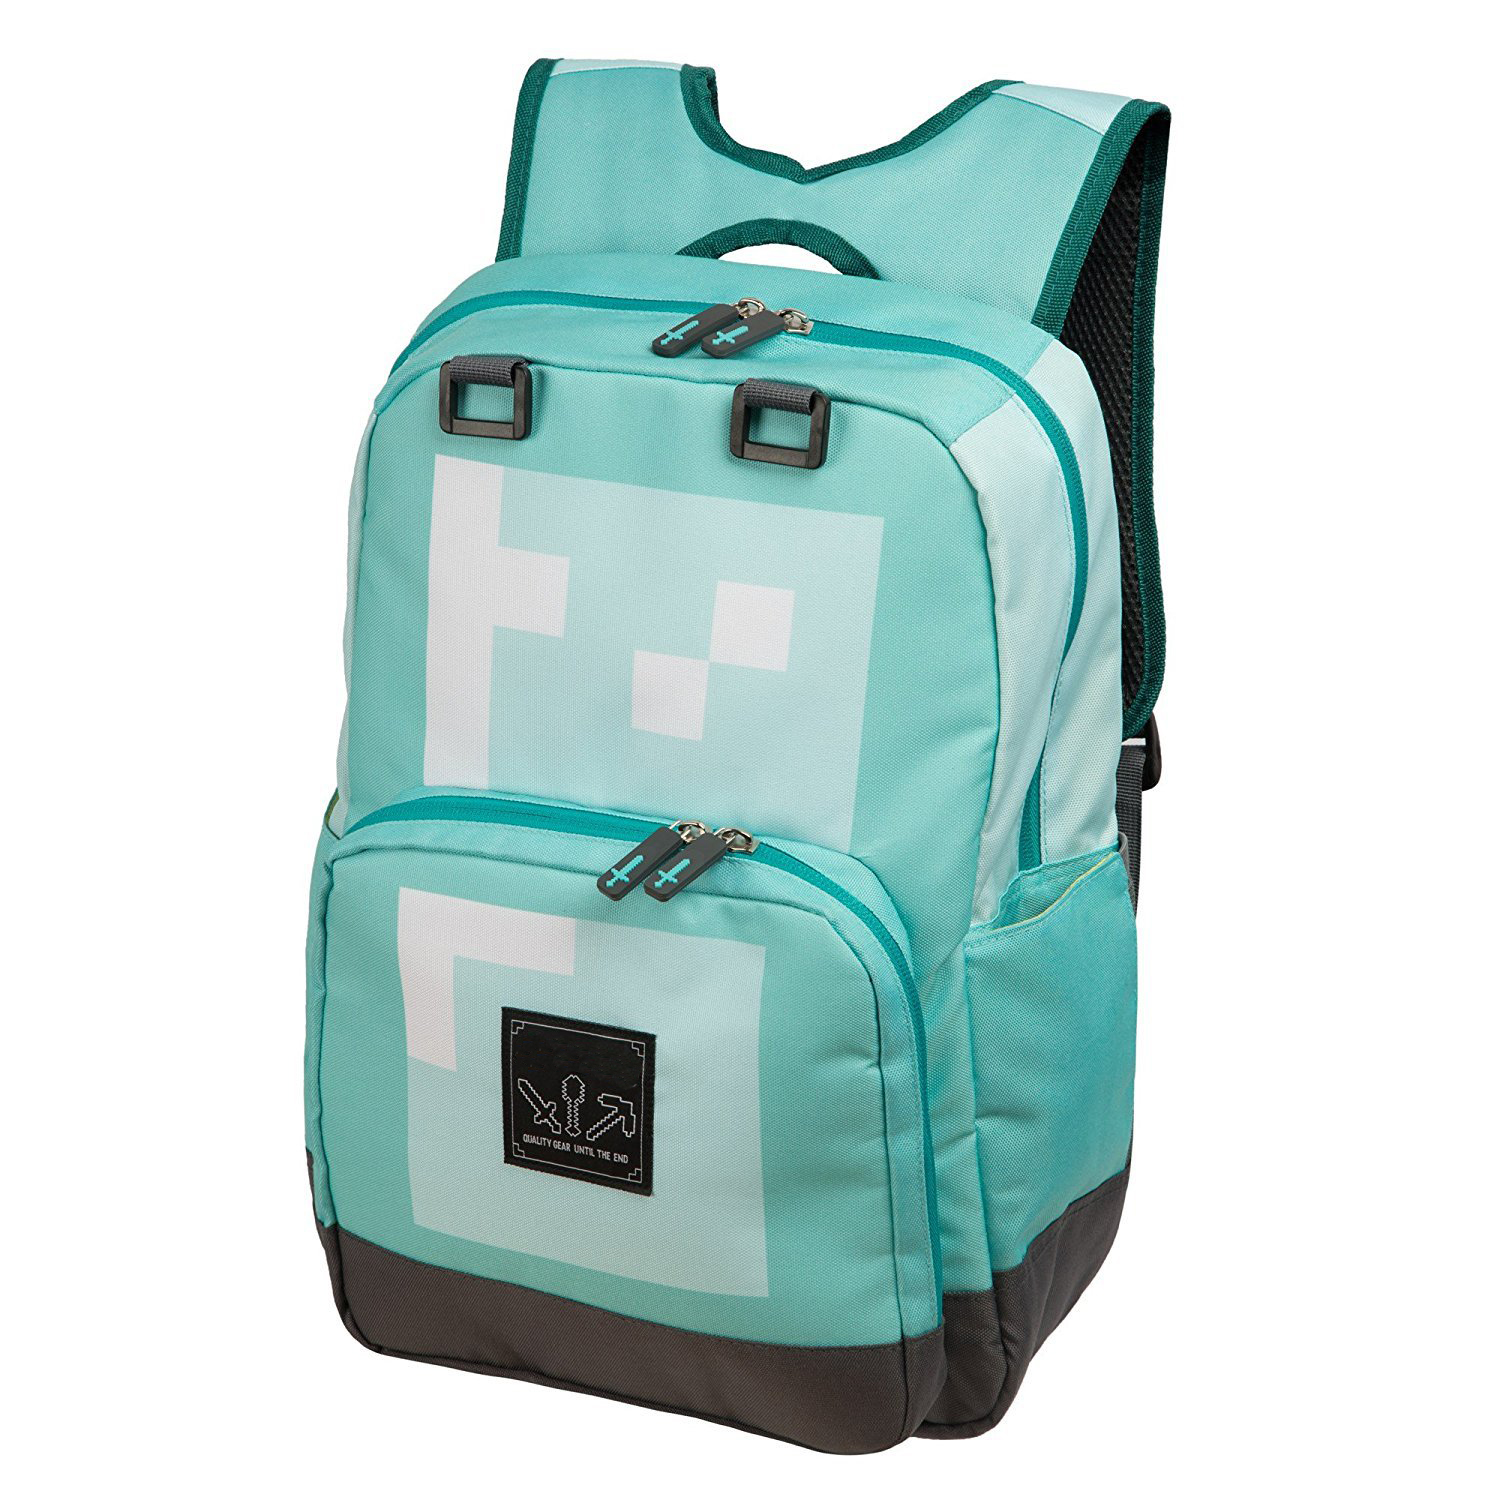 Game MineCraft JJ Cartoon Teenager Backpack Boy Girl Bags Primary Backpack School Bags for Kids Action Figure Toys Children Gift 2018 bendy and the ink machine backpack for children school bags cartoon game printing book backpack daily school backpack